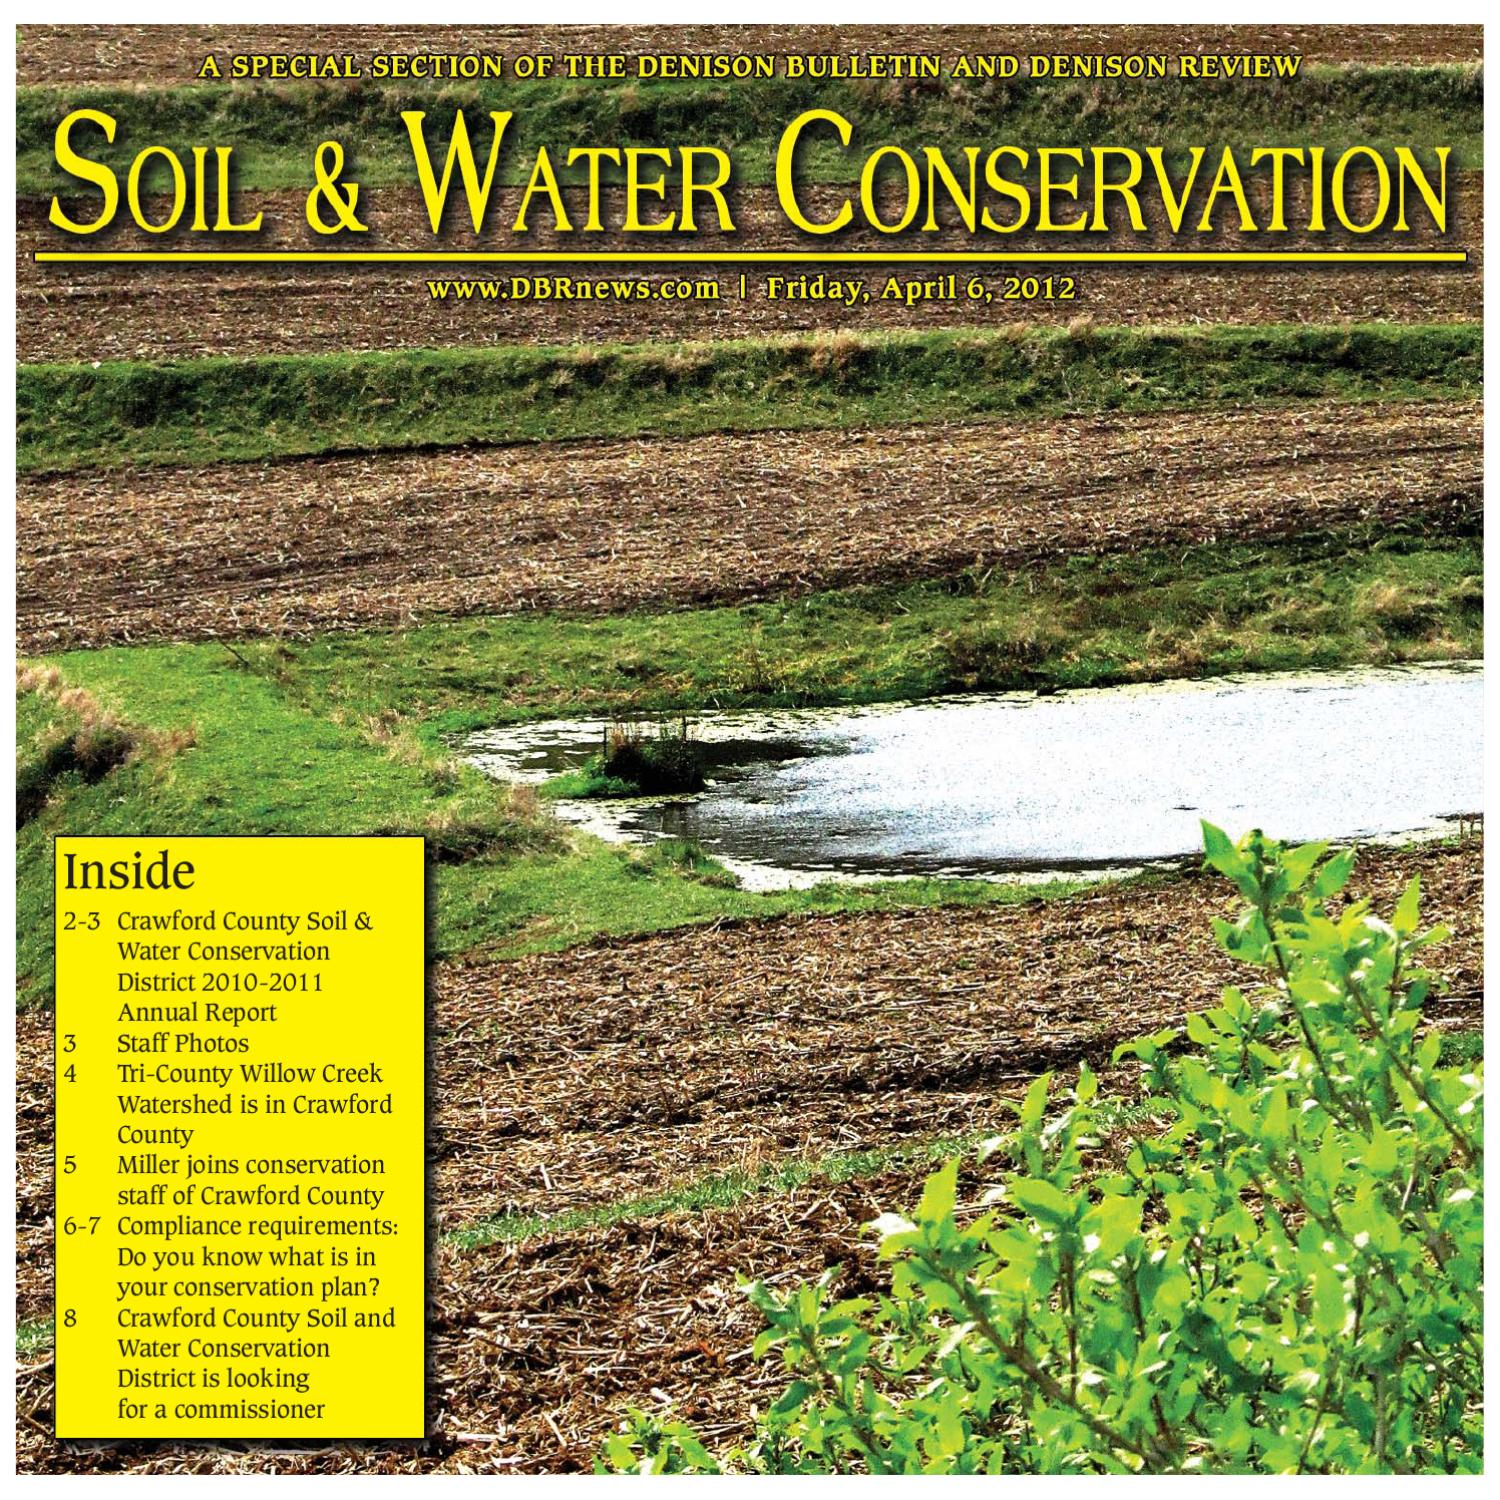 water and soil conservation Soil and water conservation merit badge workbook this workbook can help you but you still need to read the merit badge pamphlet this workbook can help you organize your thoughts as you.